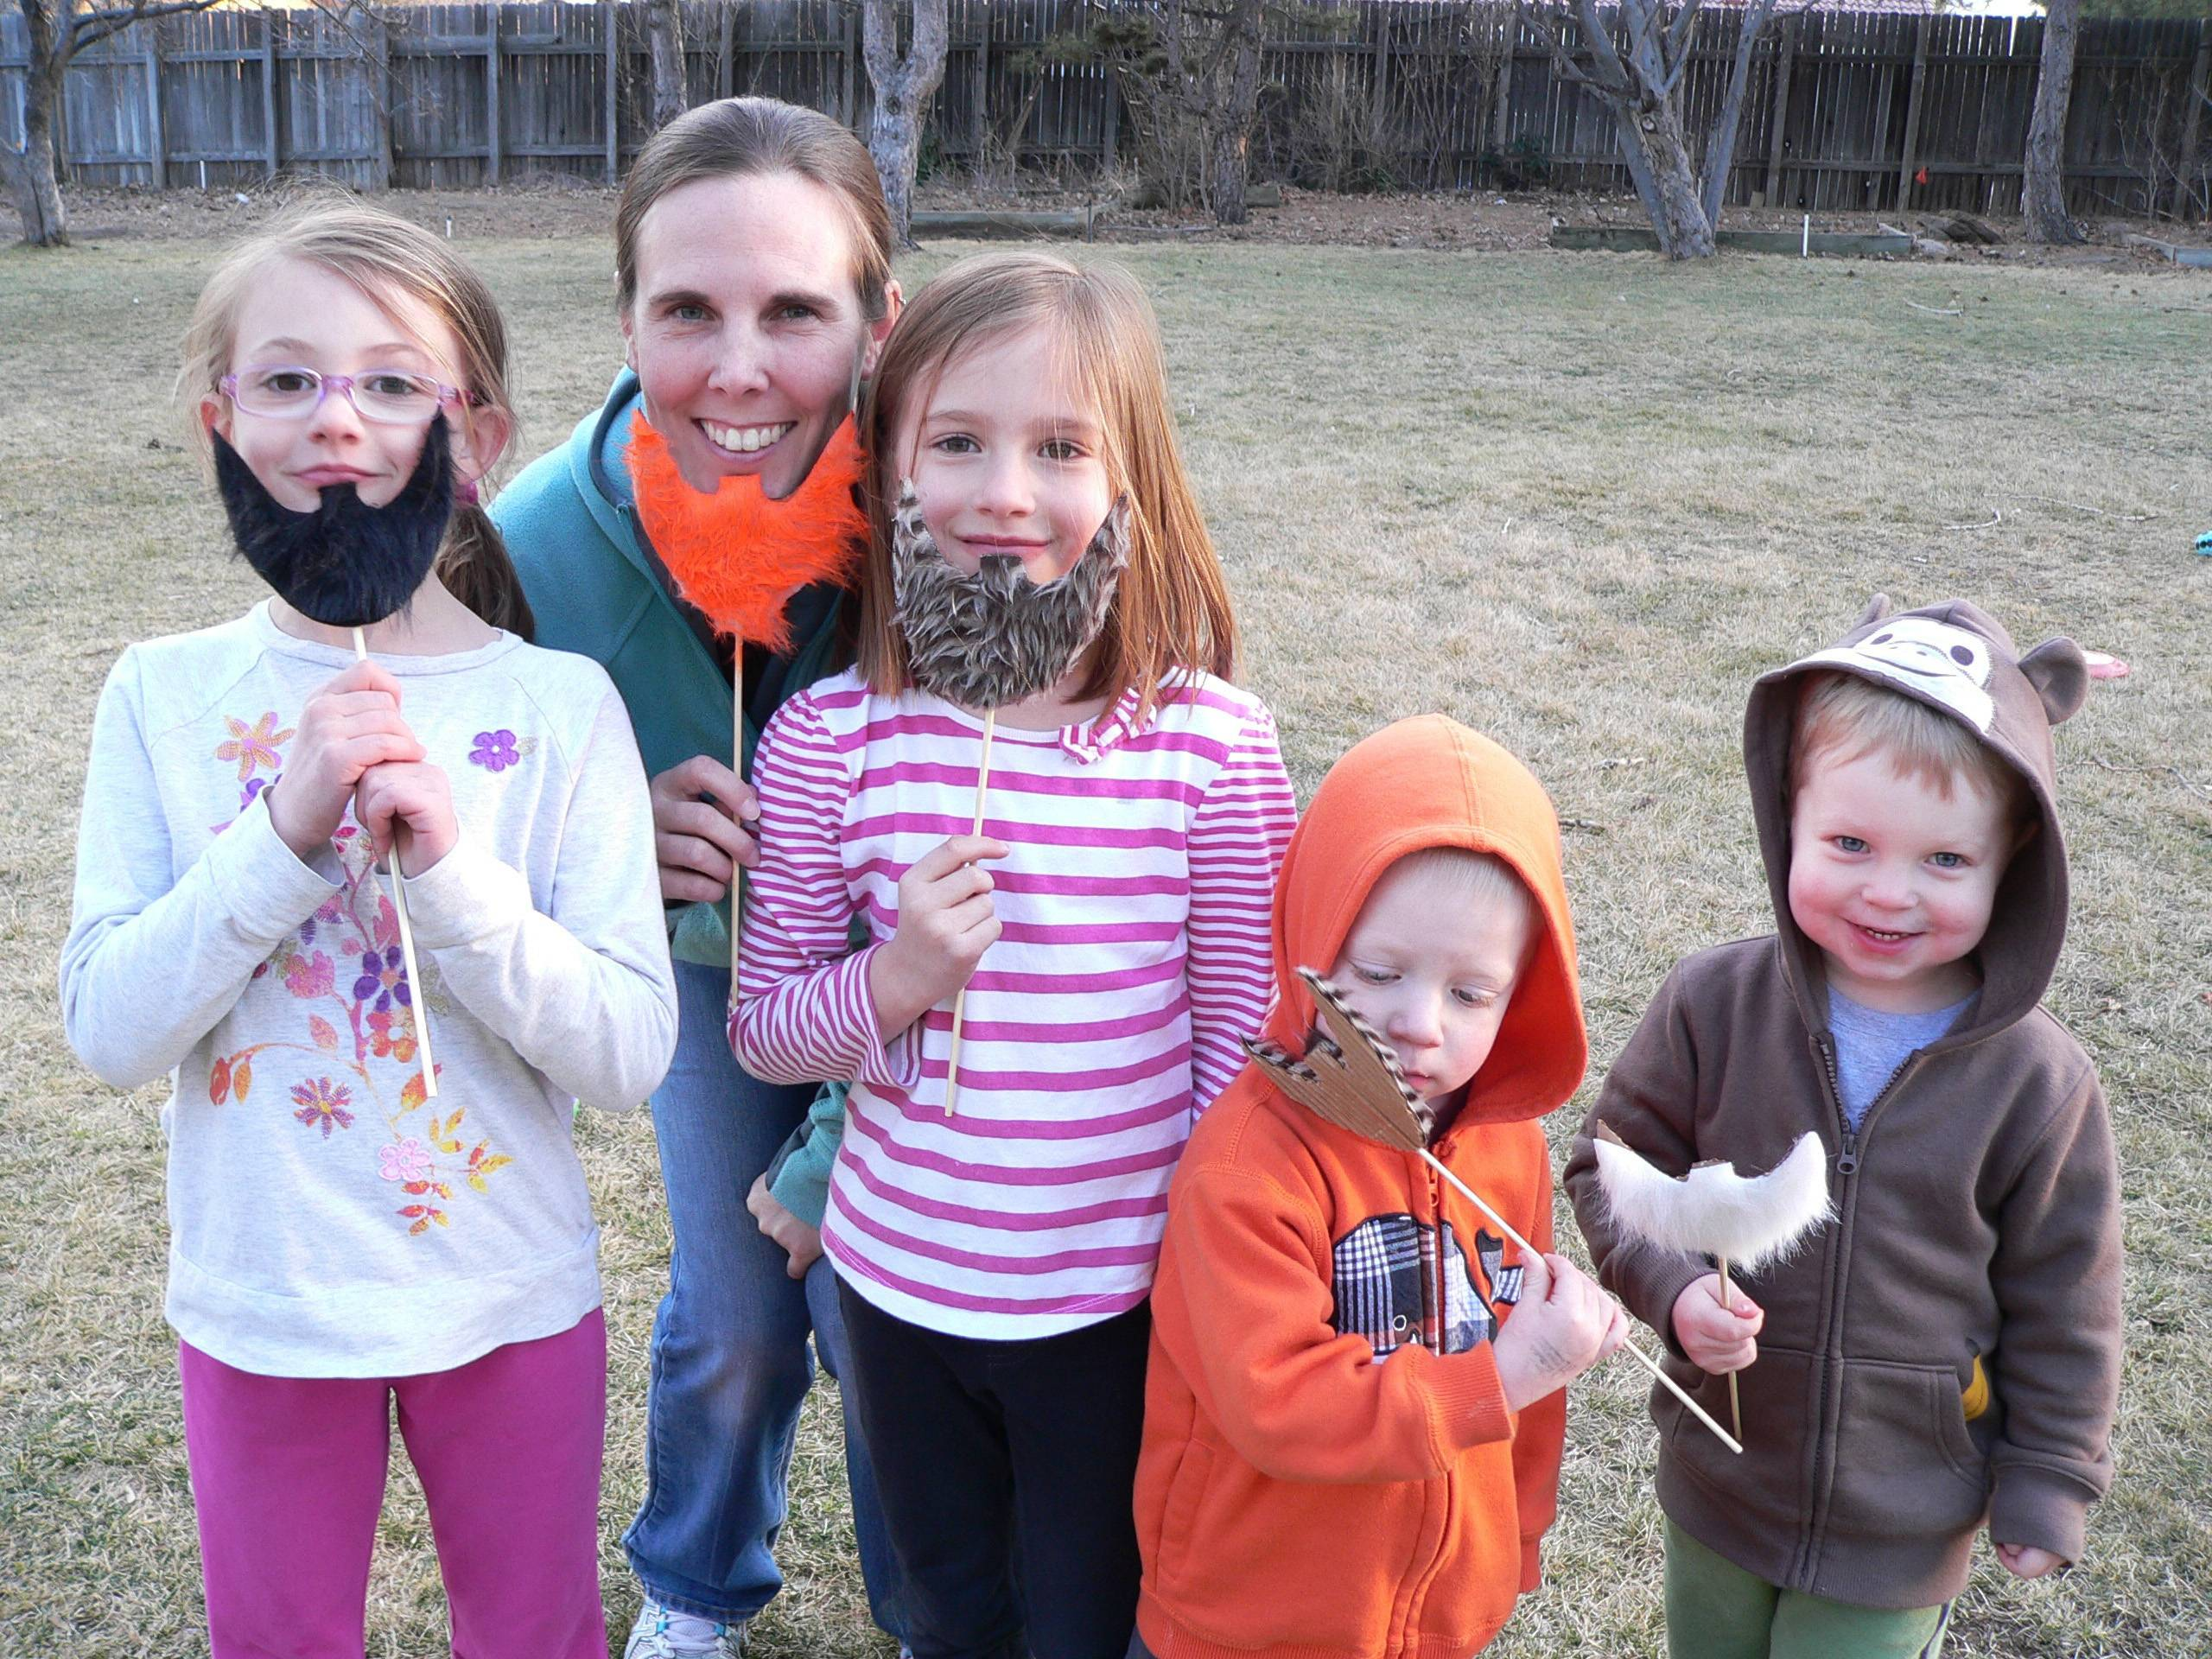 Kids can make their own leprechaun beards from faux fur and cardboard for St. Patrick's Day.